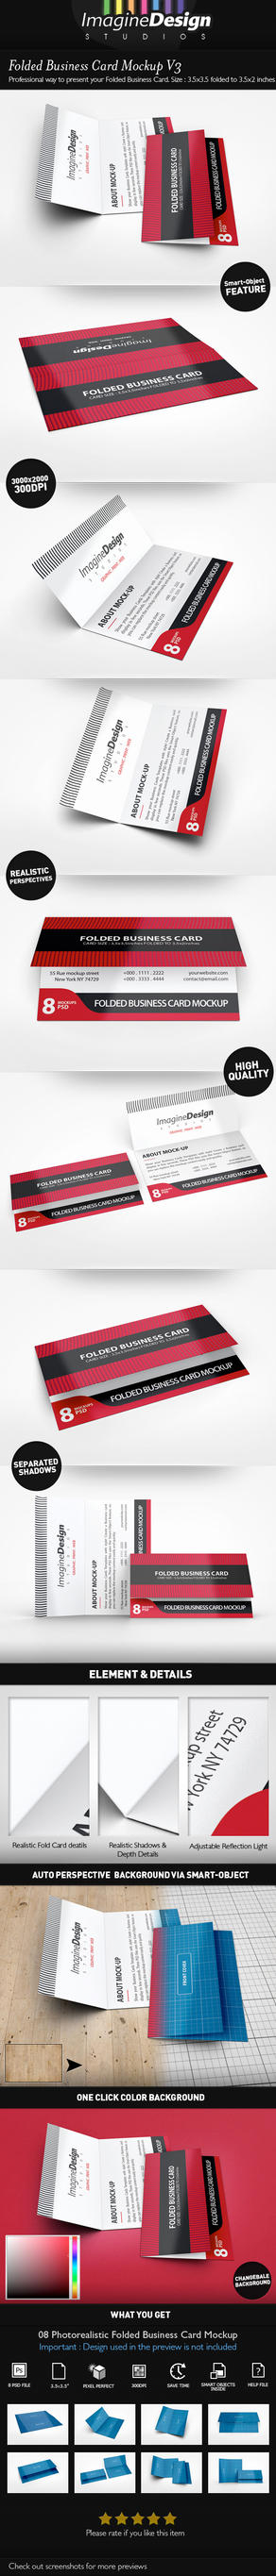 Folded Business Card Mockup V3 by idesignstudio